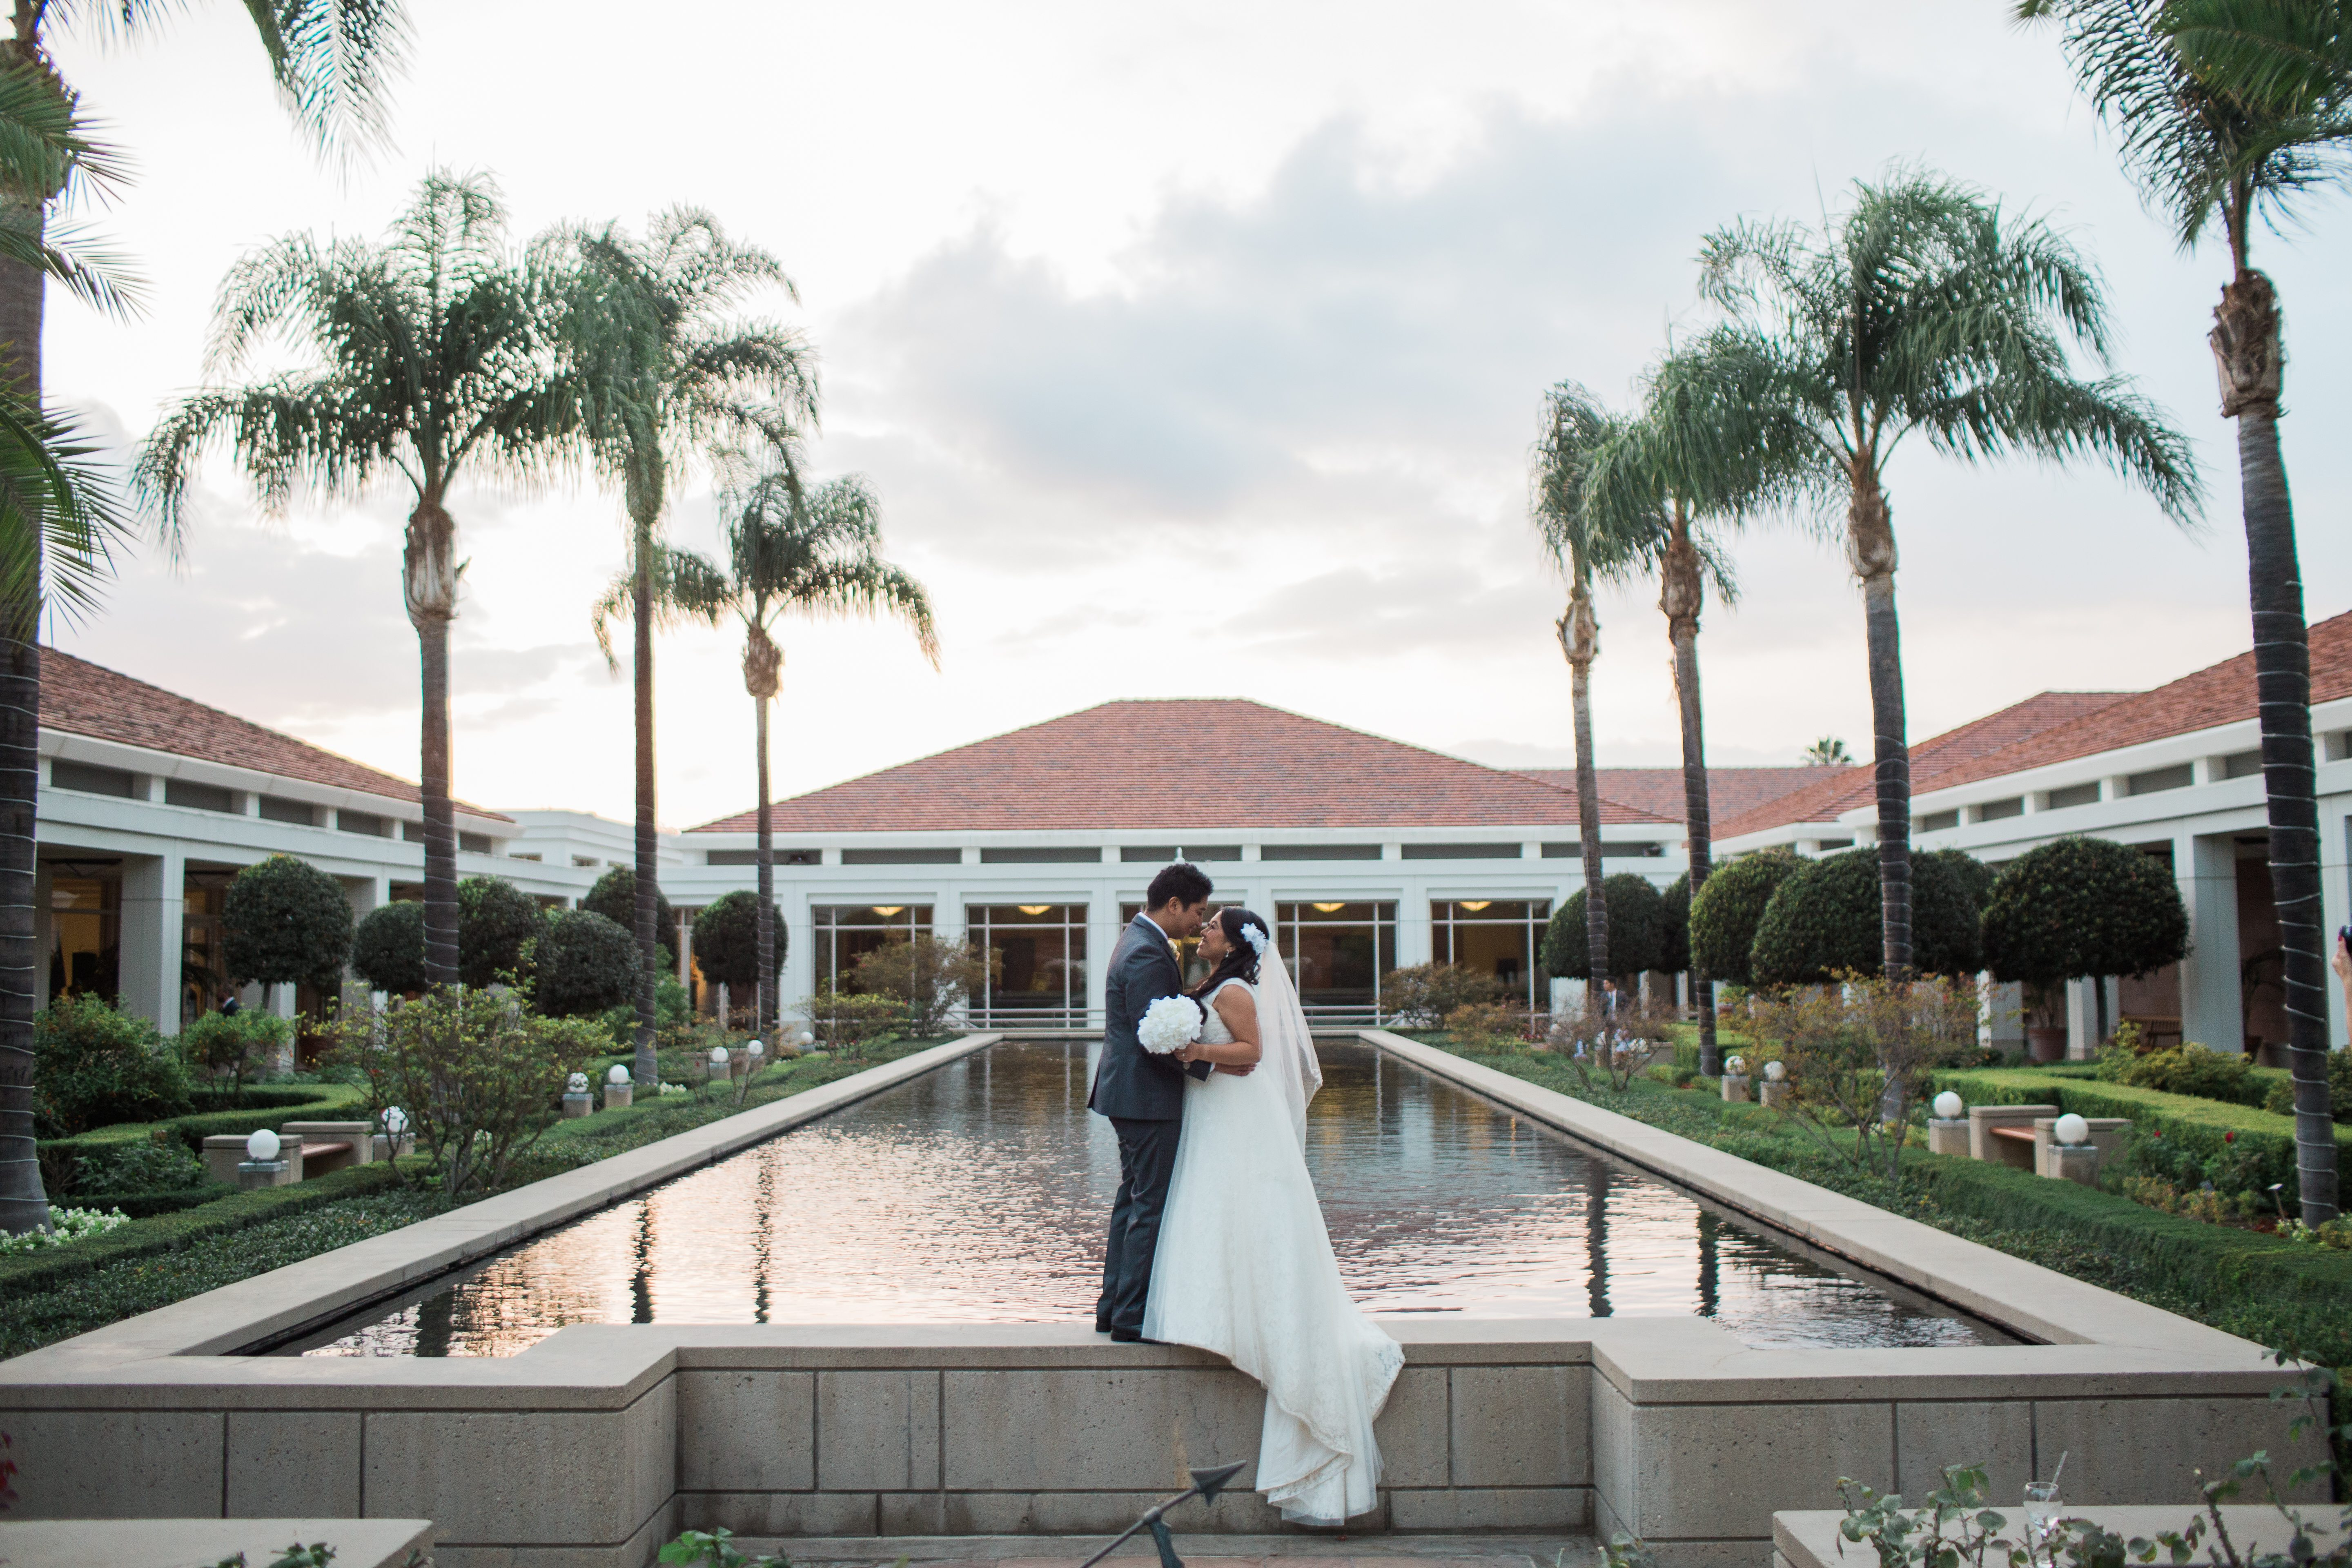 Ana & Rodgie's Colorfully Classic Wedding